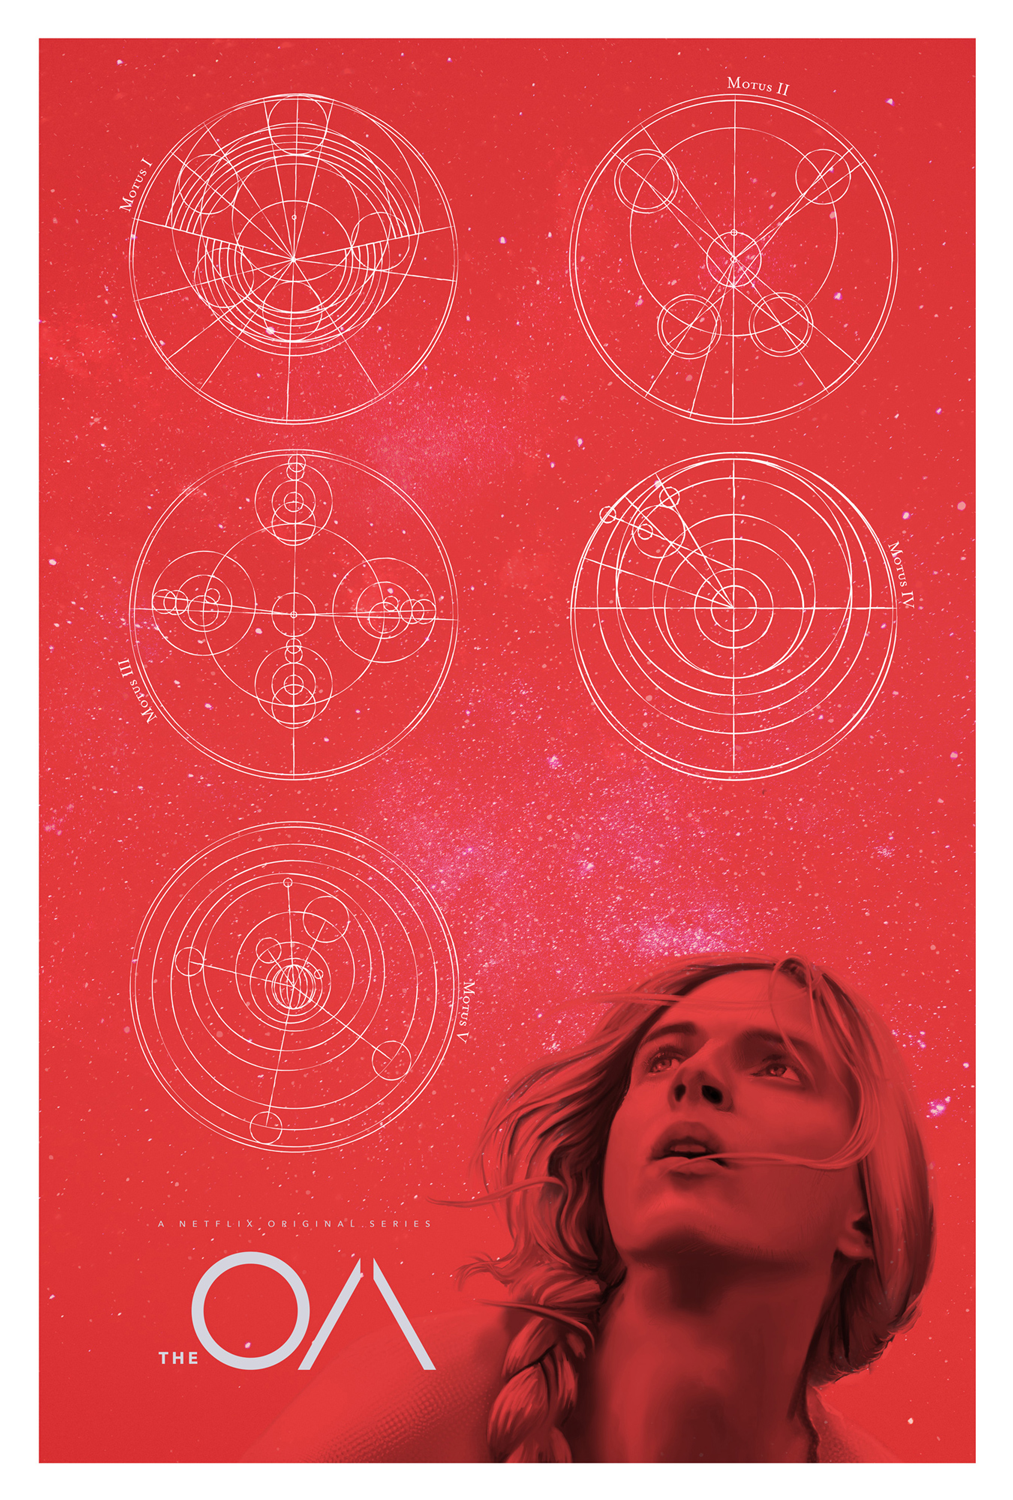 TheOA Red Variant NETFLIX MOVIE poster design by Mark Levy Art